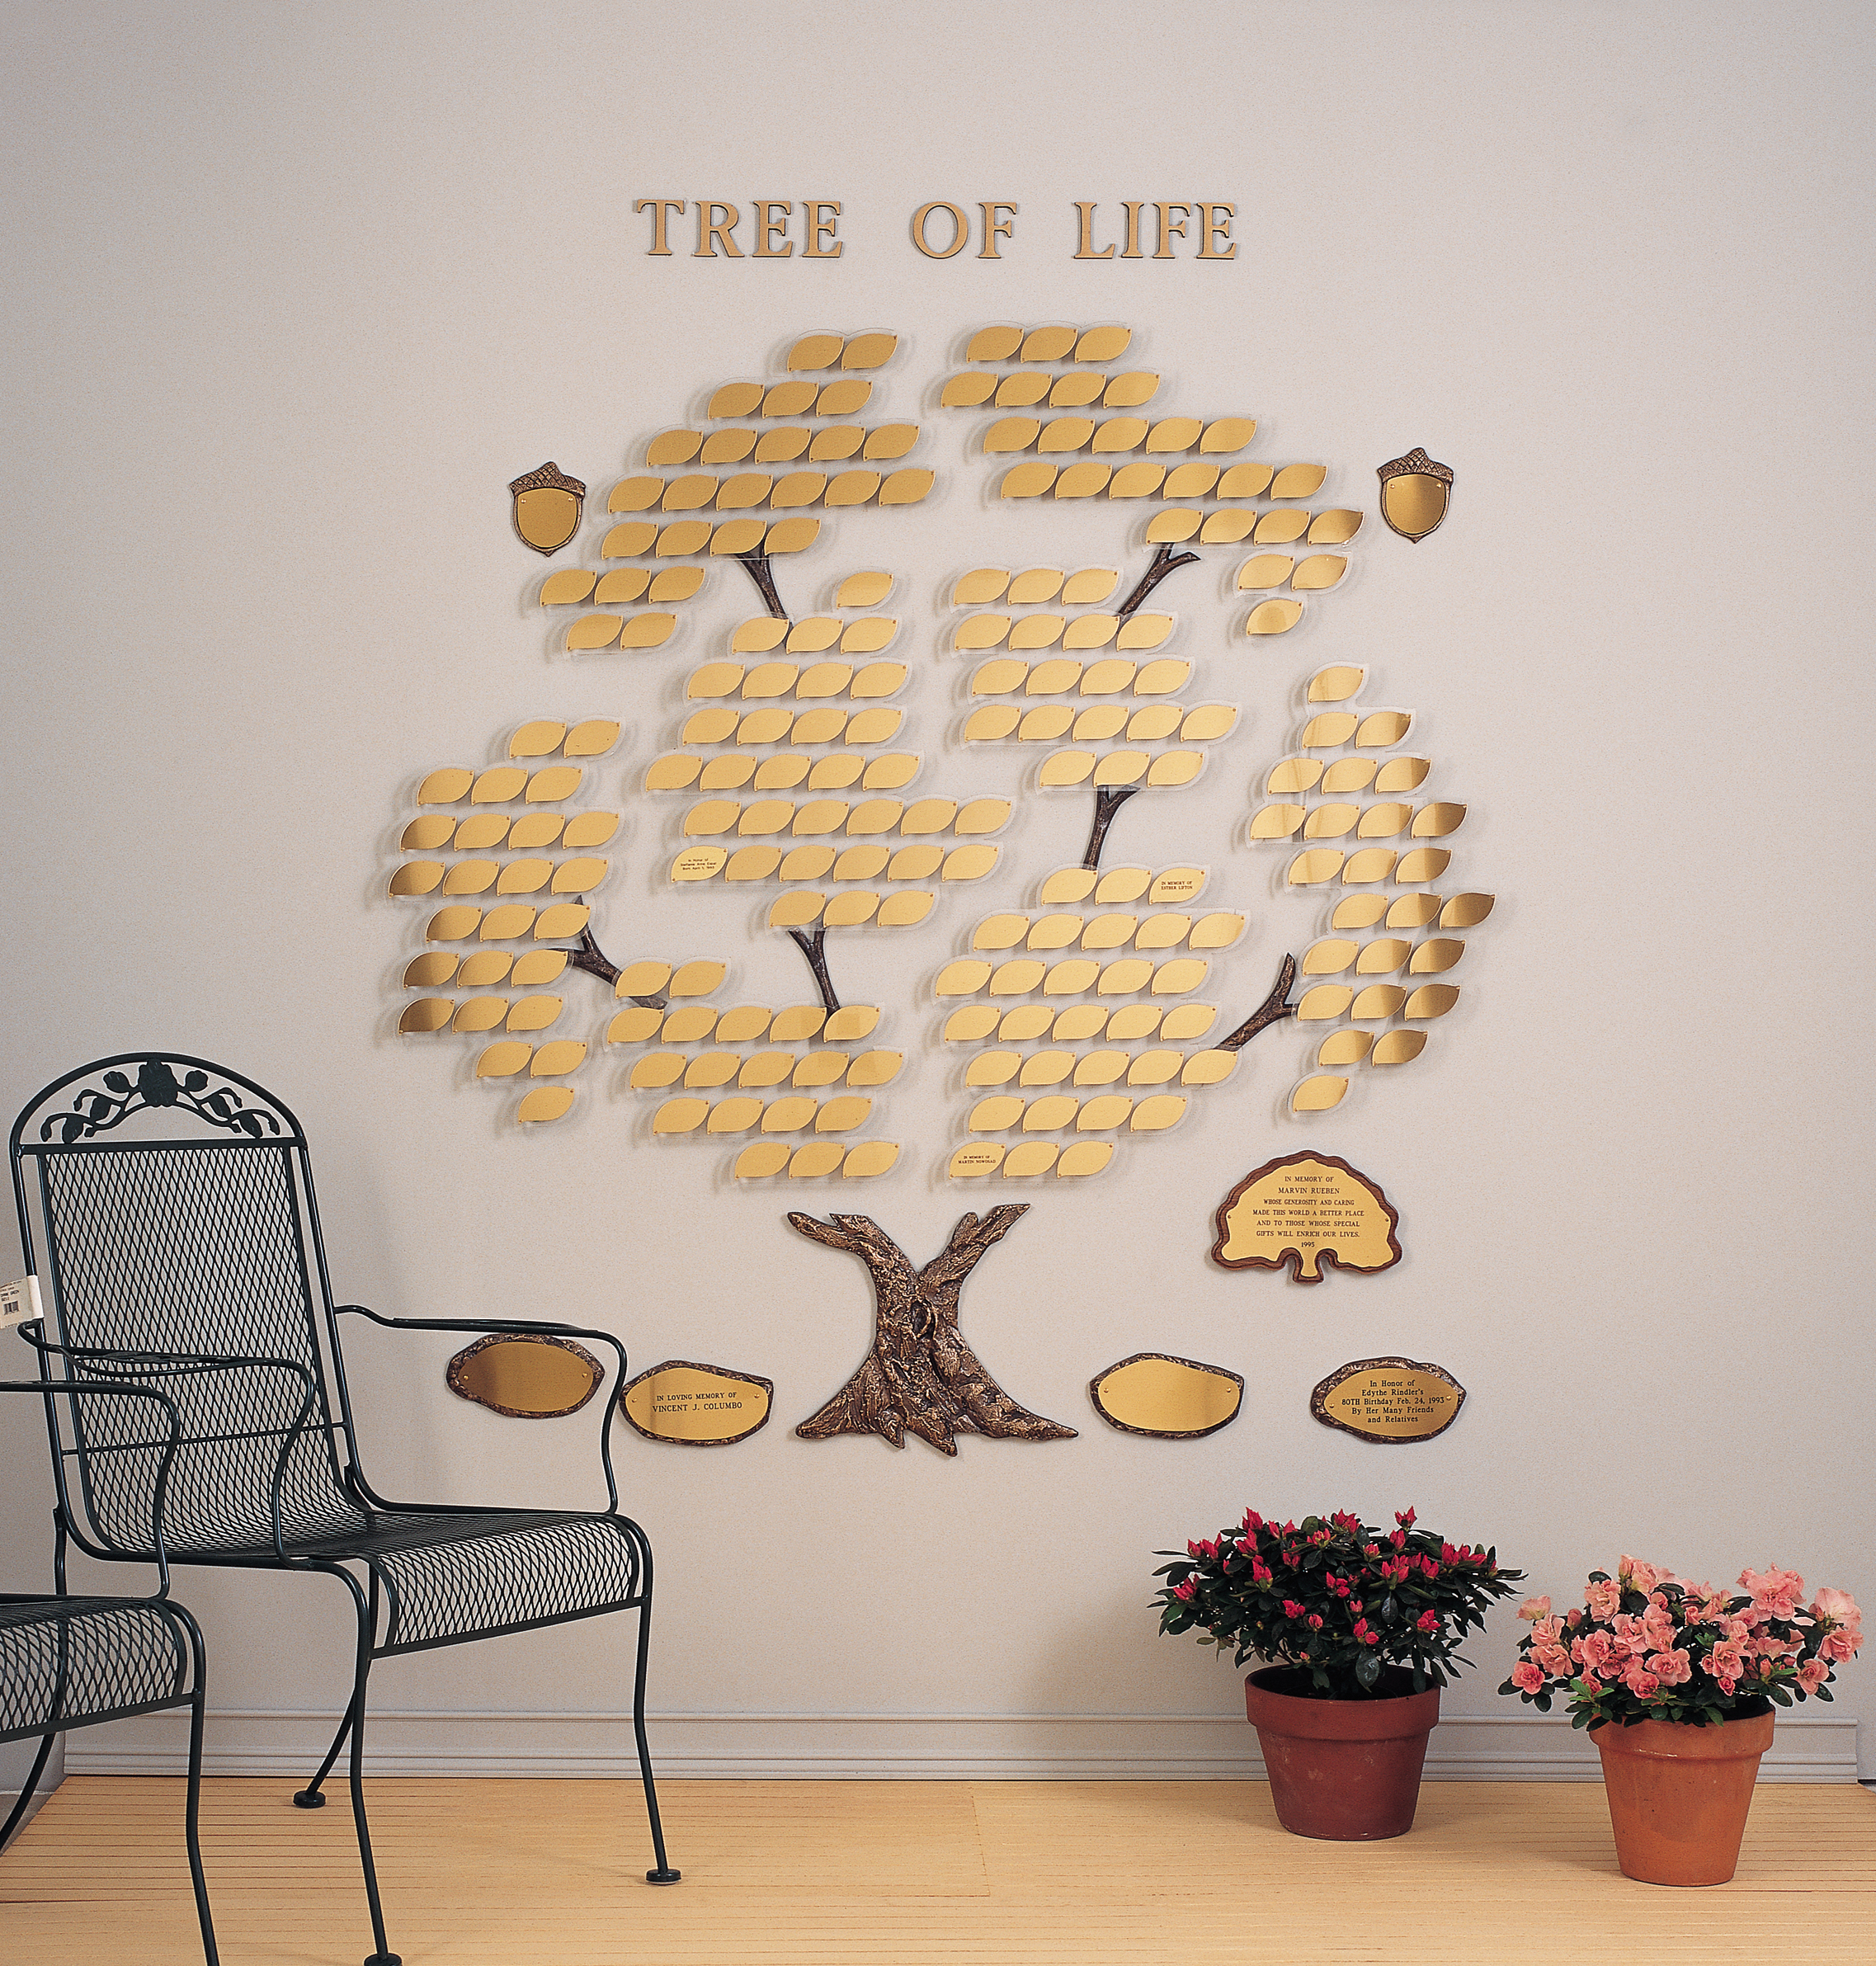 Trees of Life - Growing Tree - 200